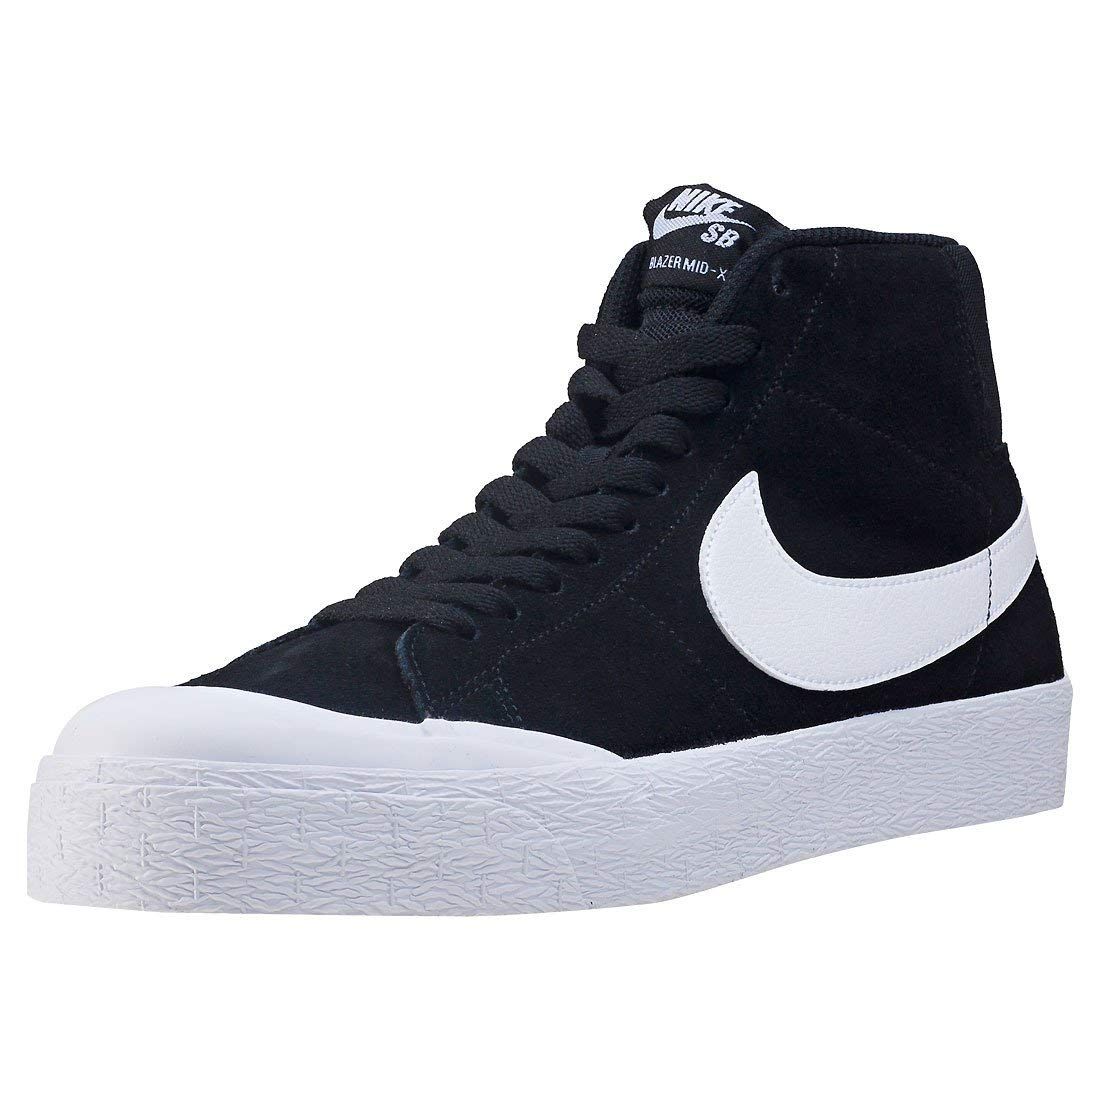 sports shoes 34f27 3cd30 Get Quotations · NIKE SB Blazer Zoom MID XT Mens Skateboarding-Shoes  876872-019 9 - Black